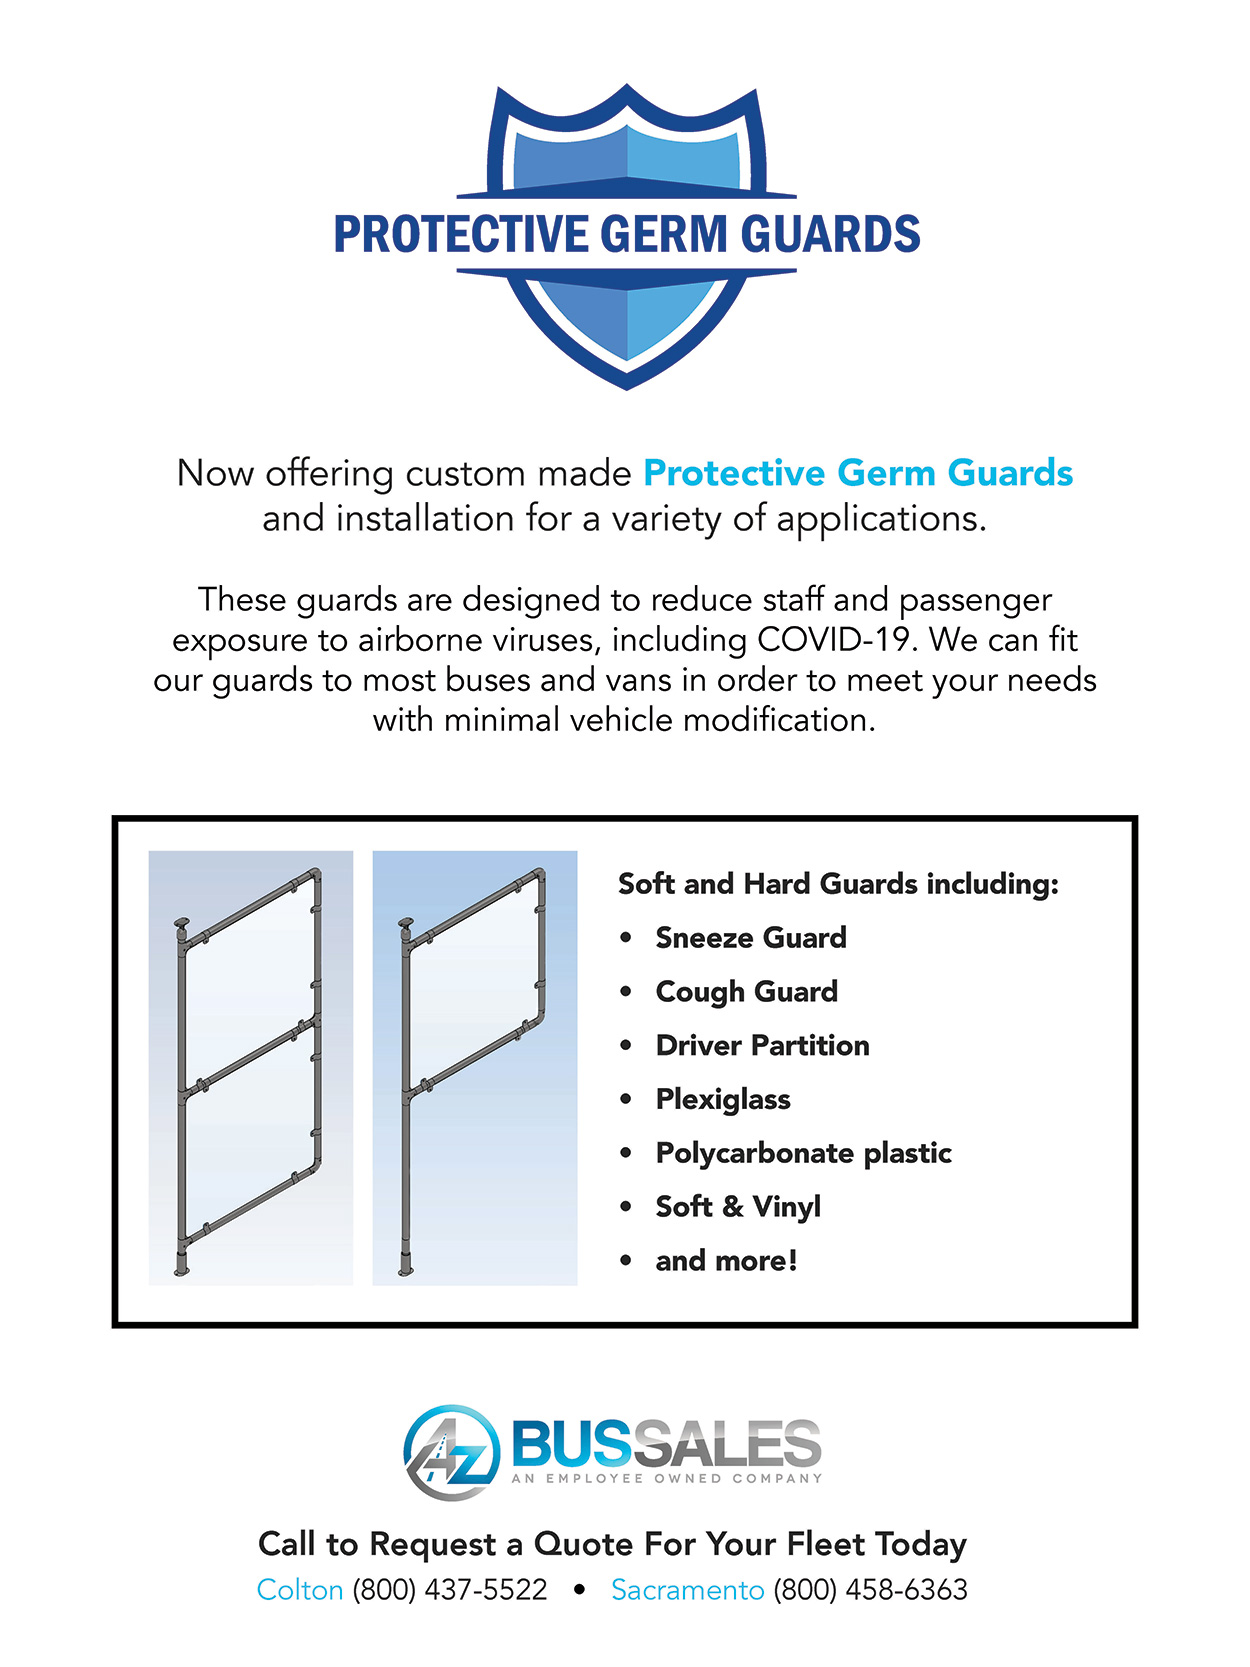 Protective-Germ-Guards-Flyer_Installed-P2